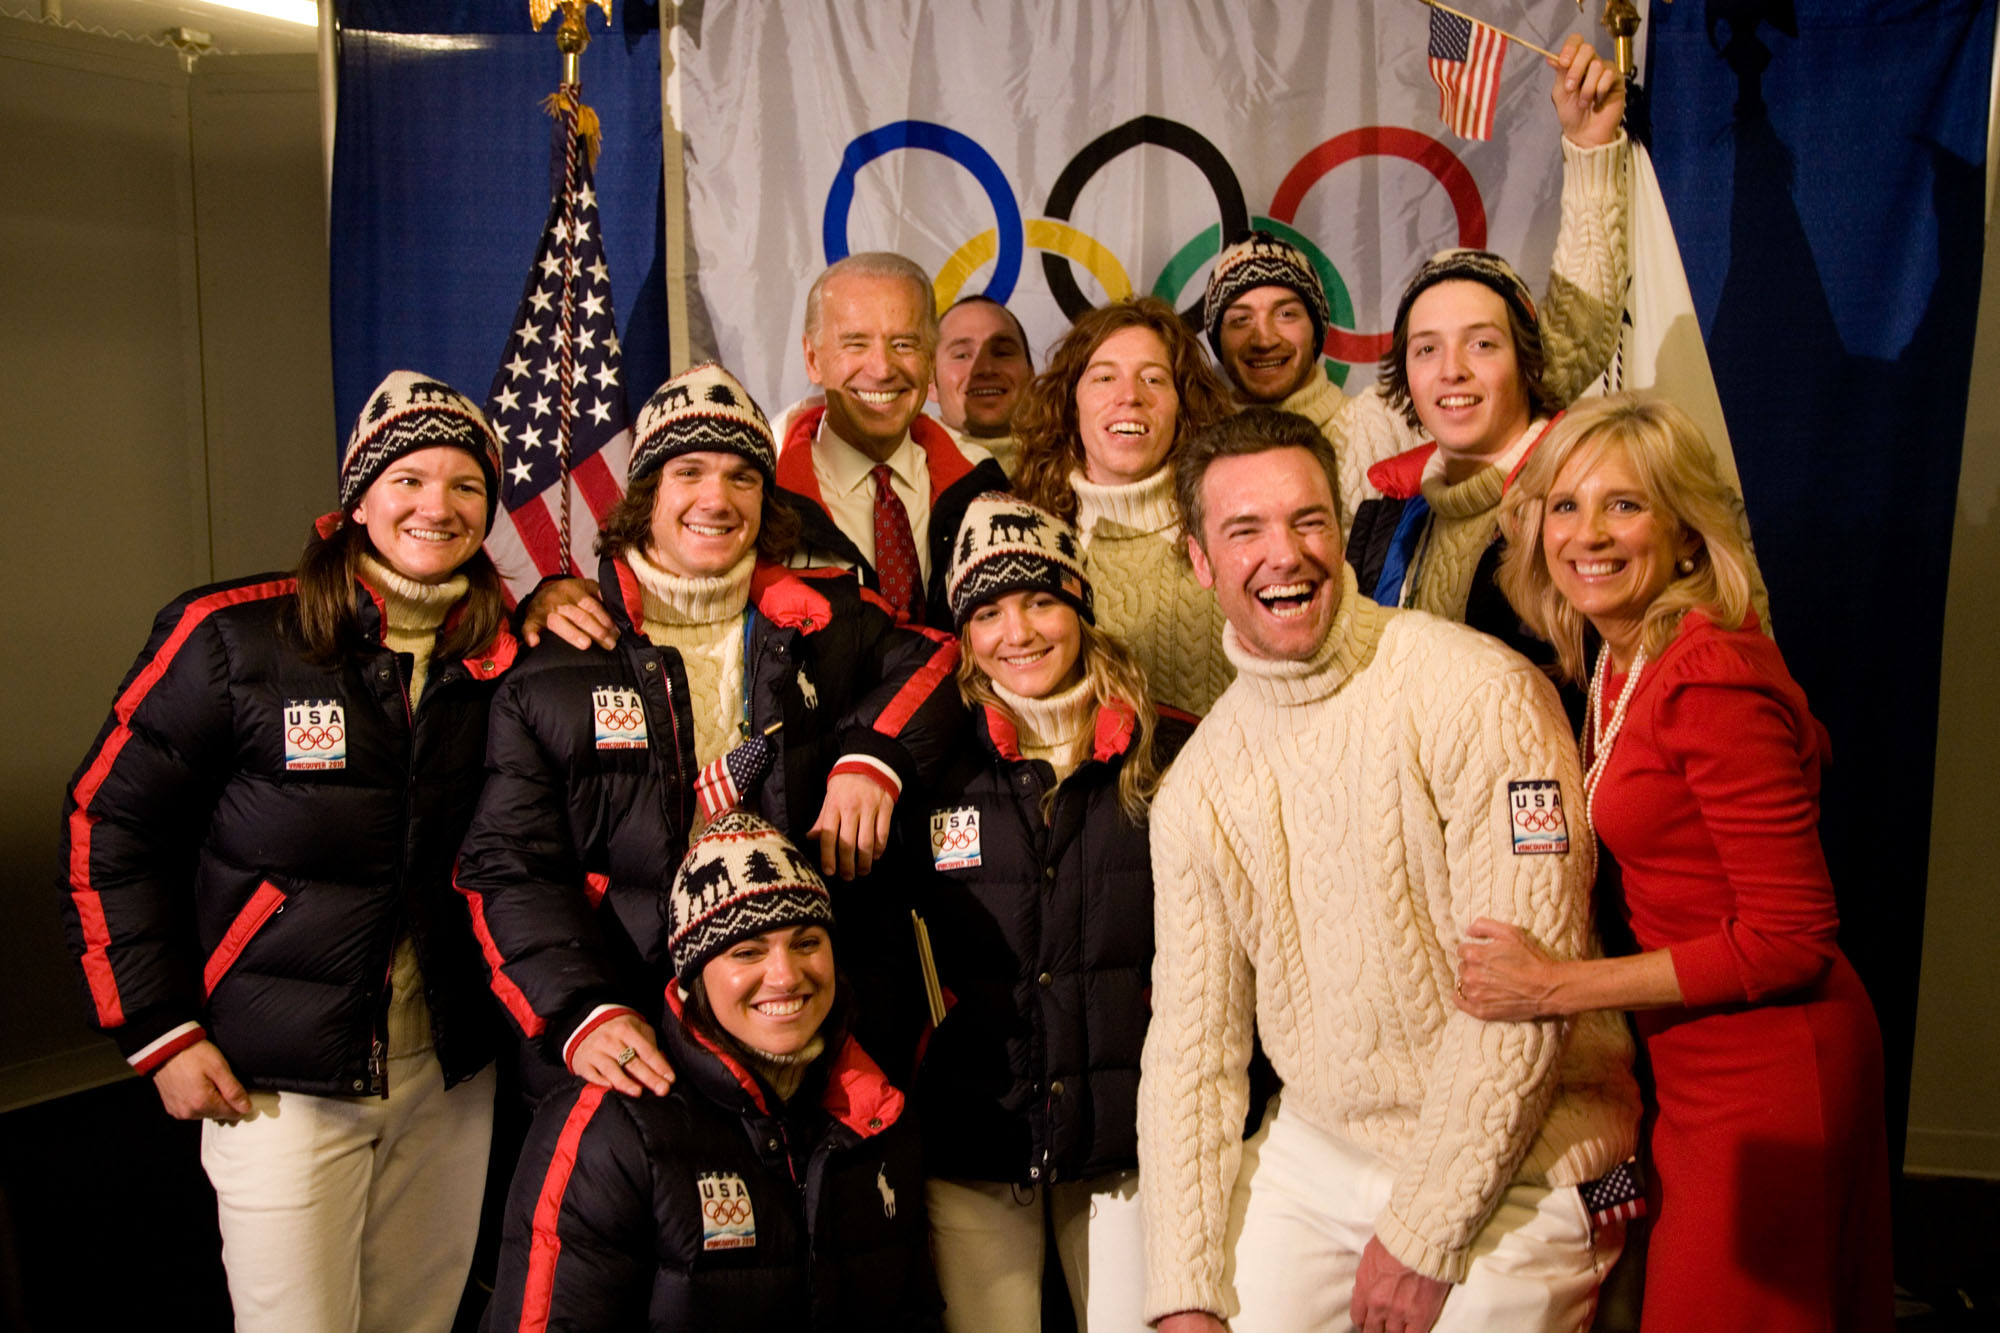 Vice President Biden and Olympic Athletes